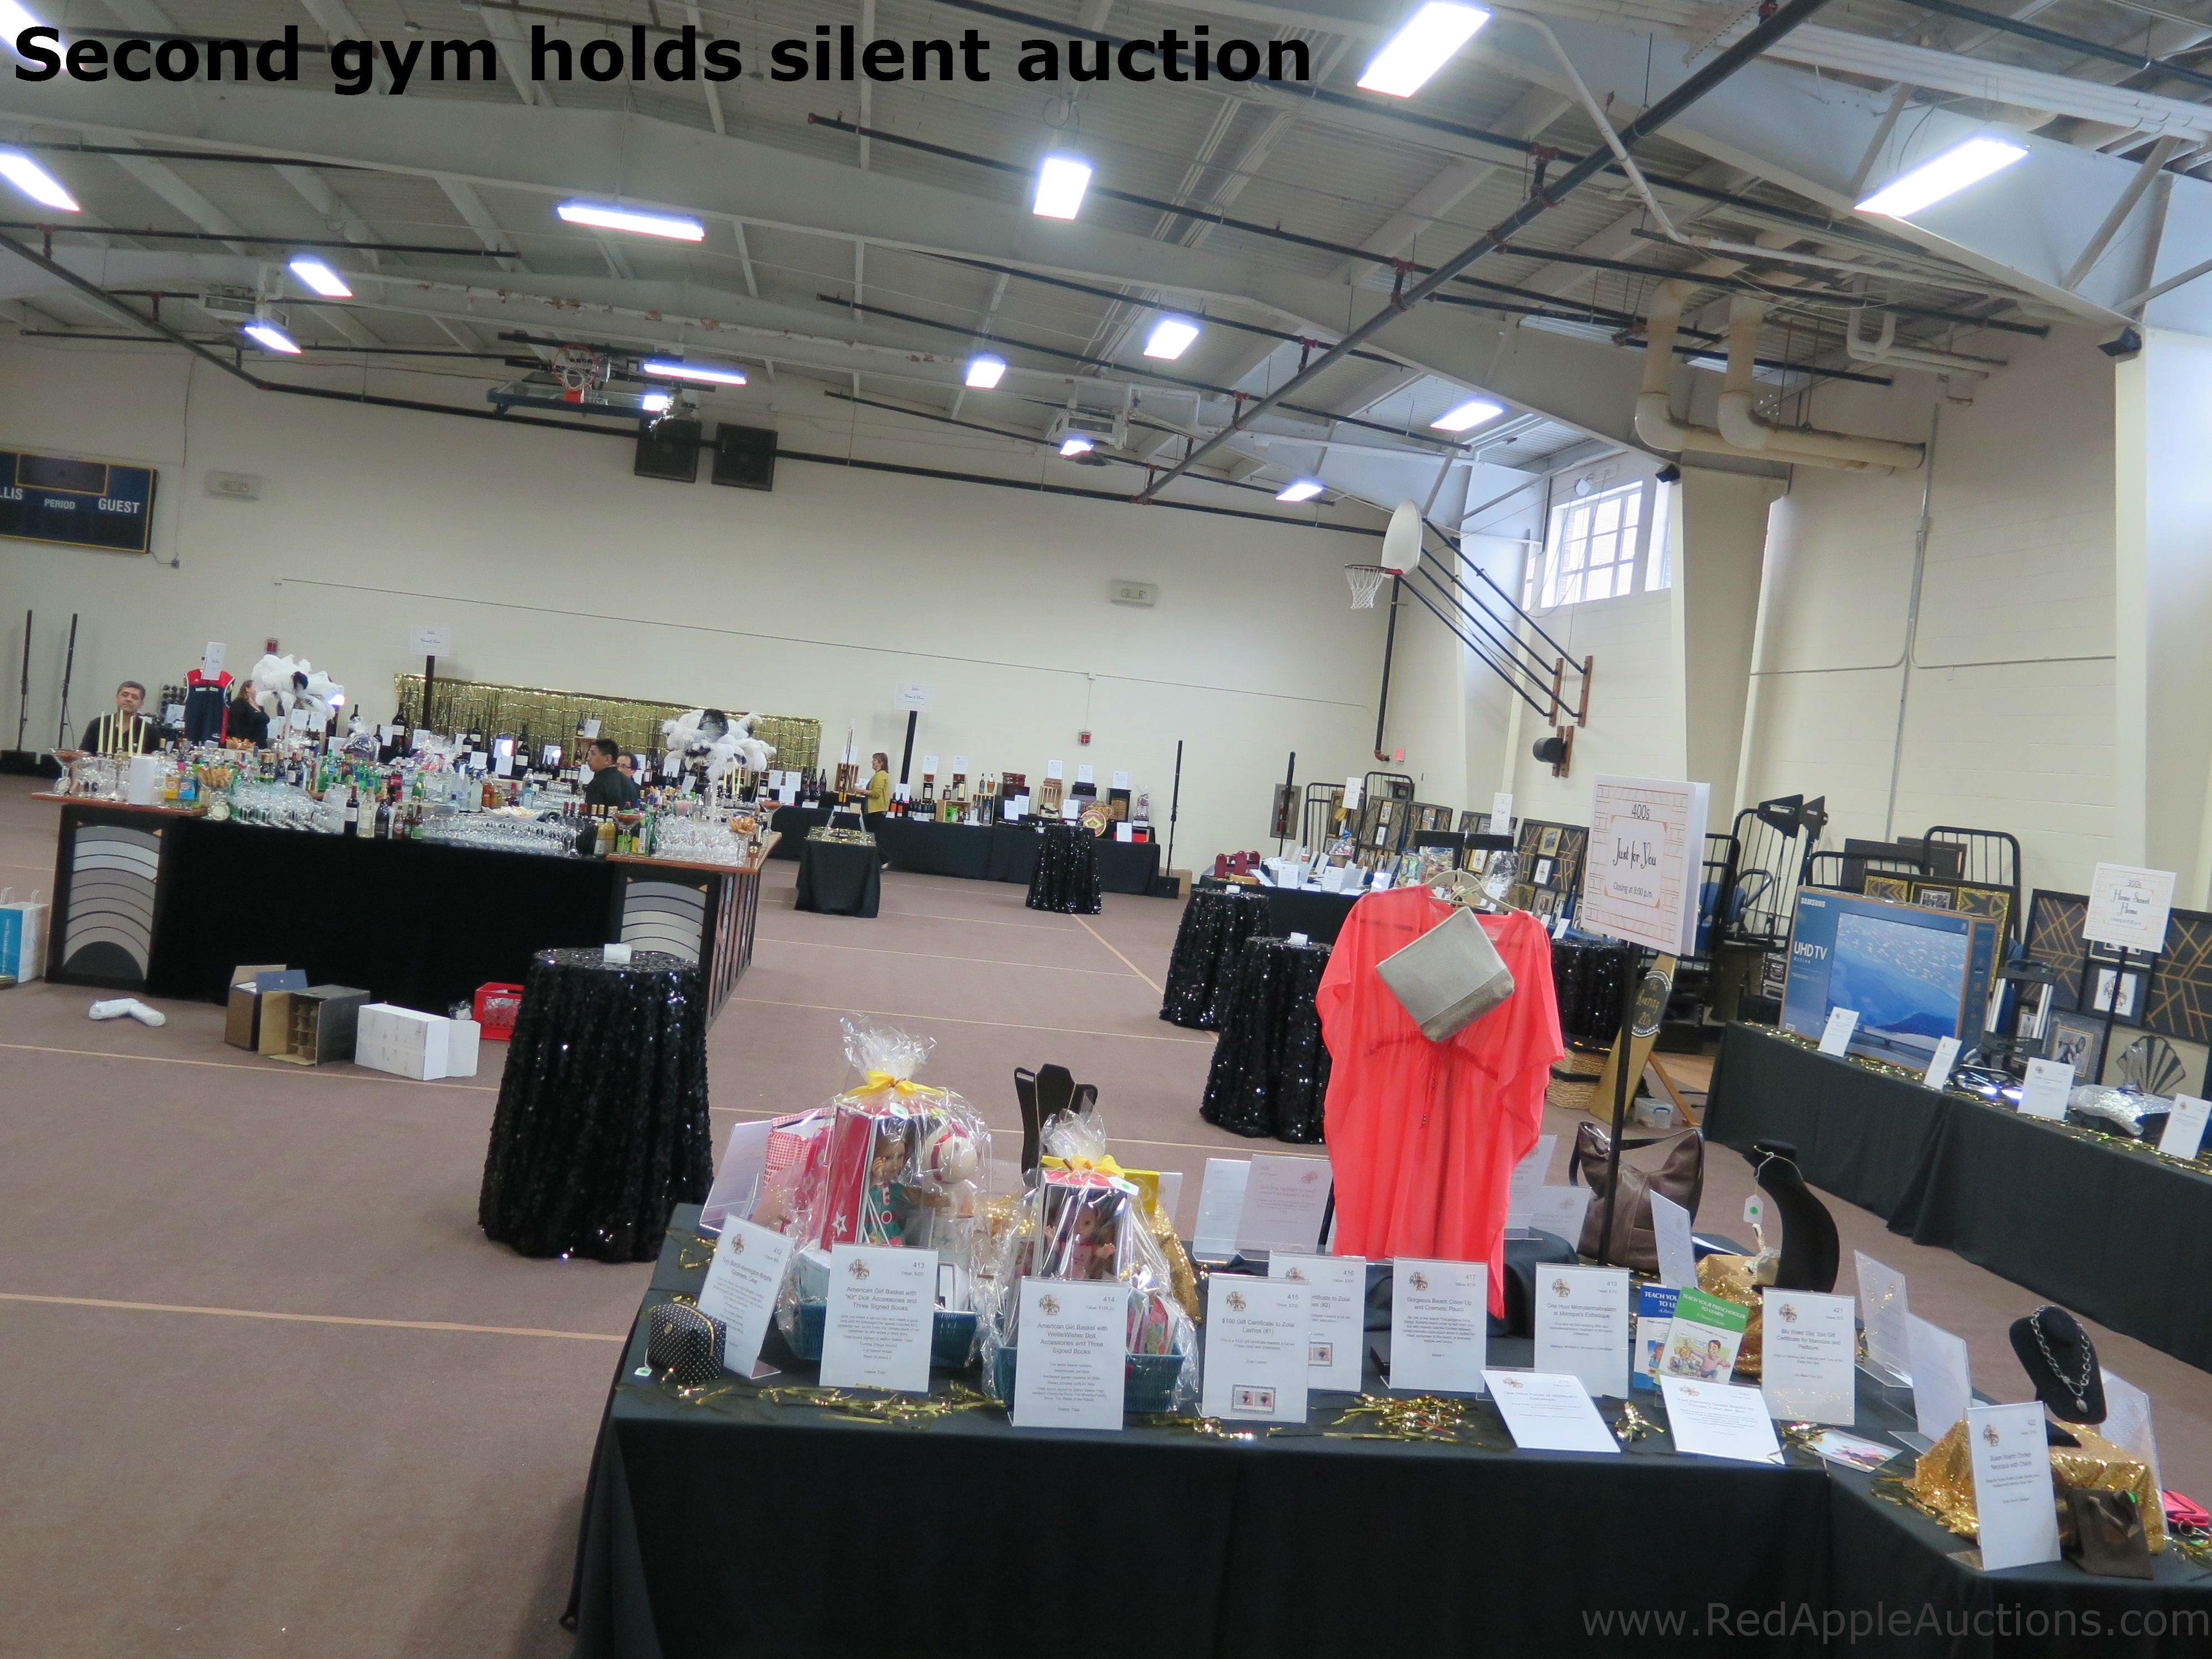 Private School Event Silent Auction Set Up In A Gym